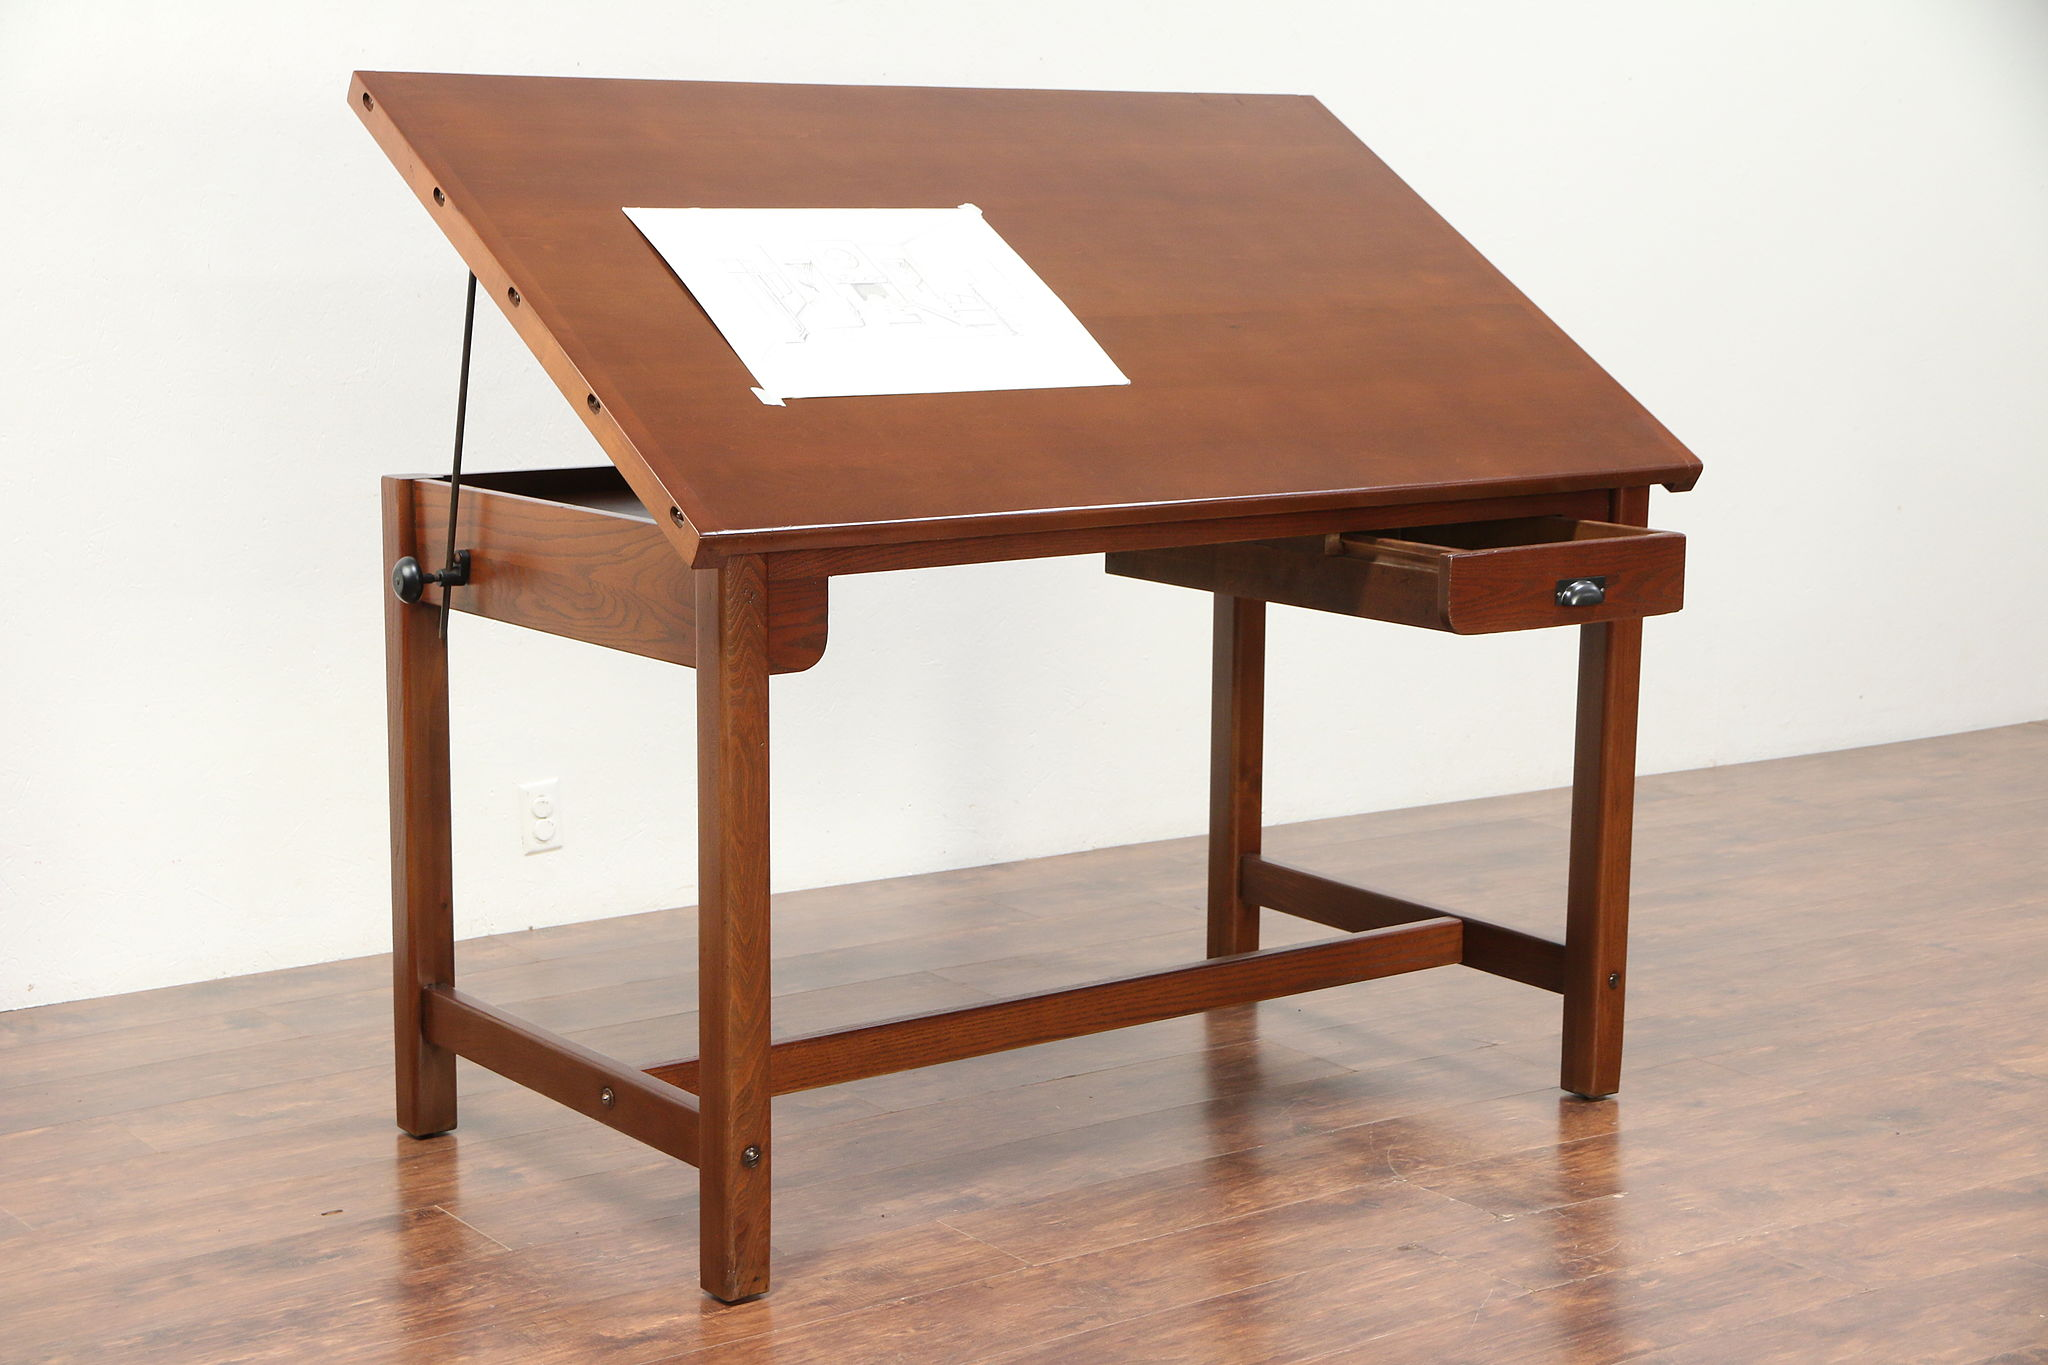 Sold Architect Or Artist Desk Vintage Drafting Or Wine Table Kitchen Island 29756 Harp Gallery Antiques Furniture